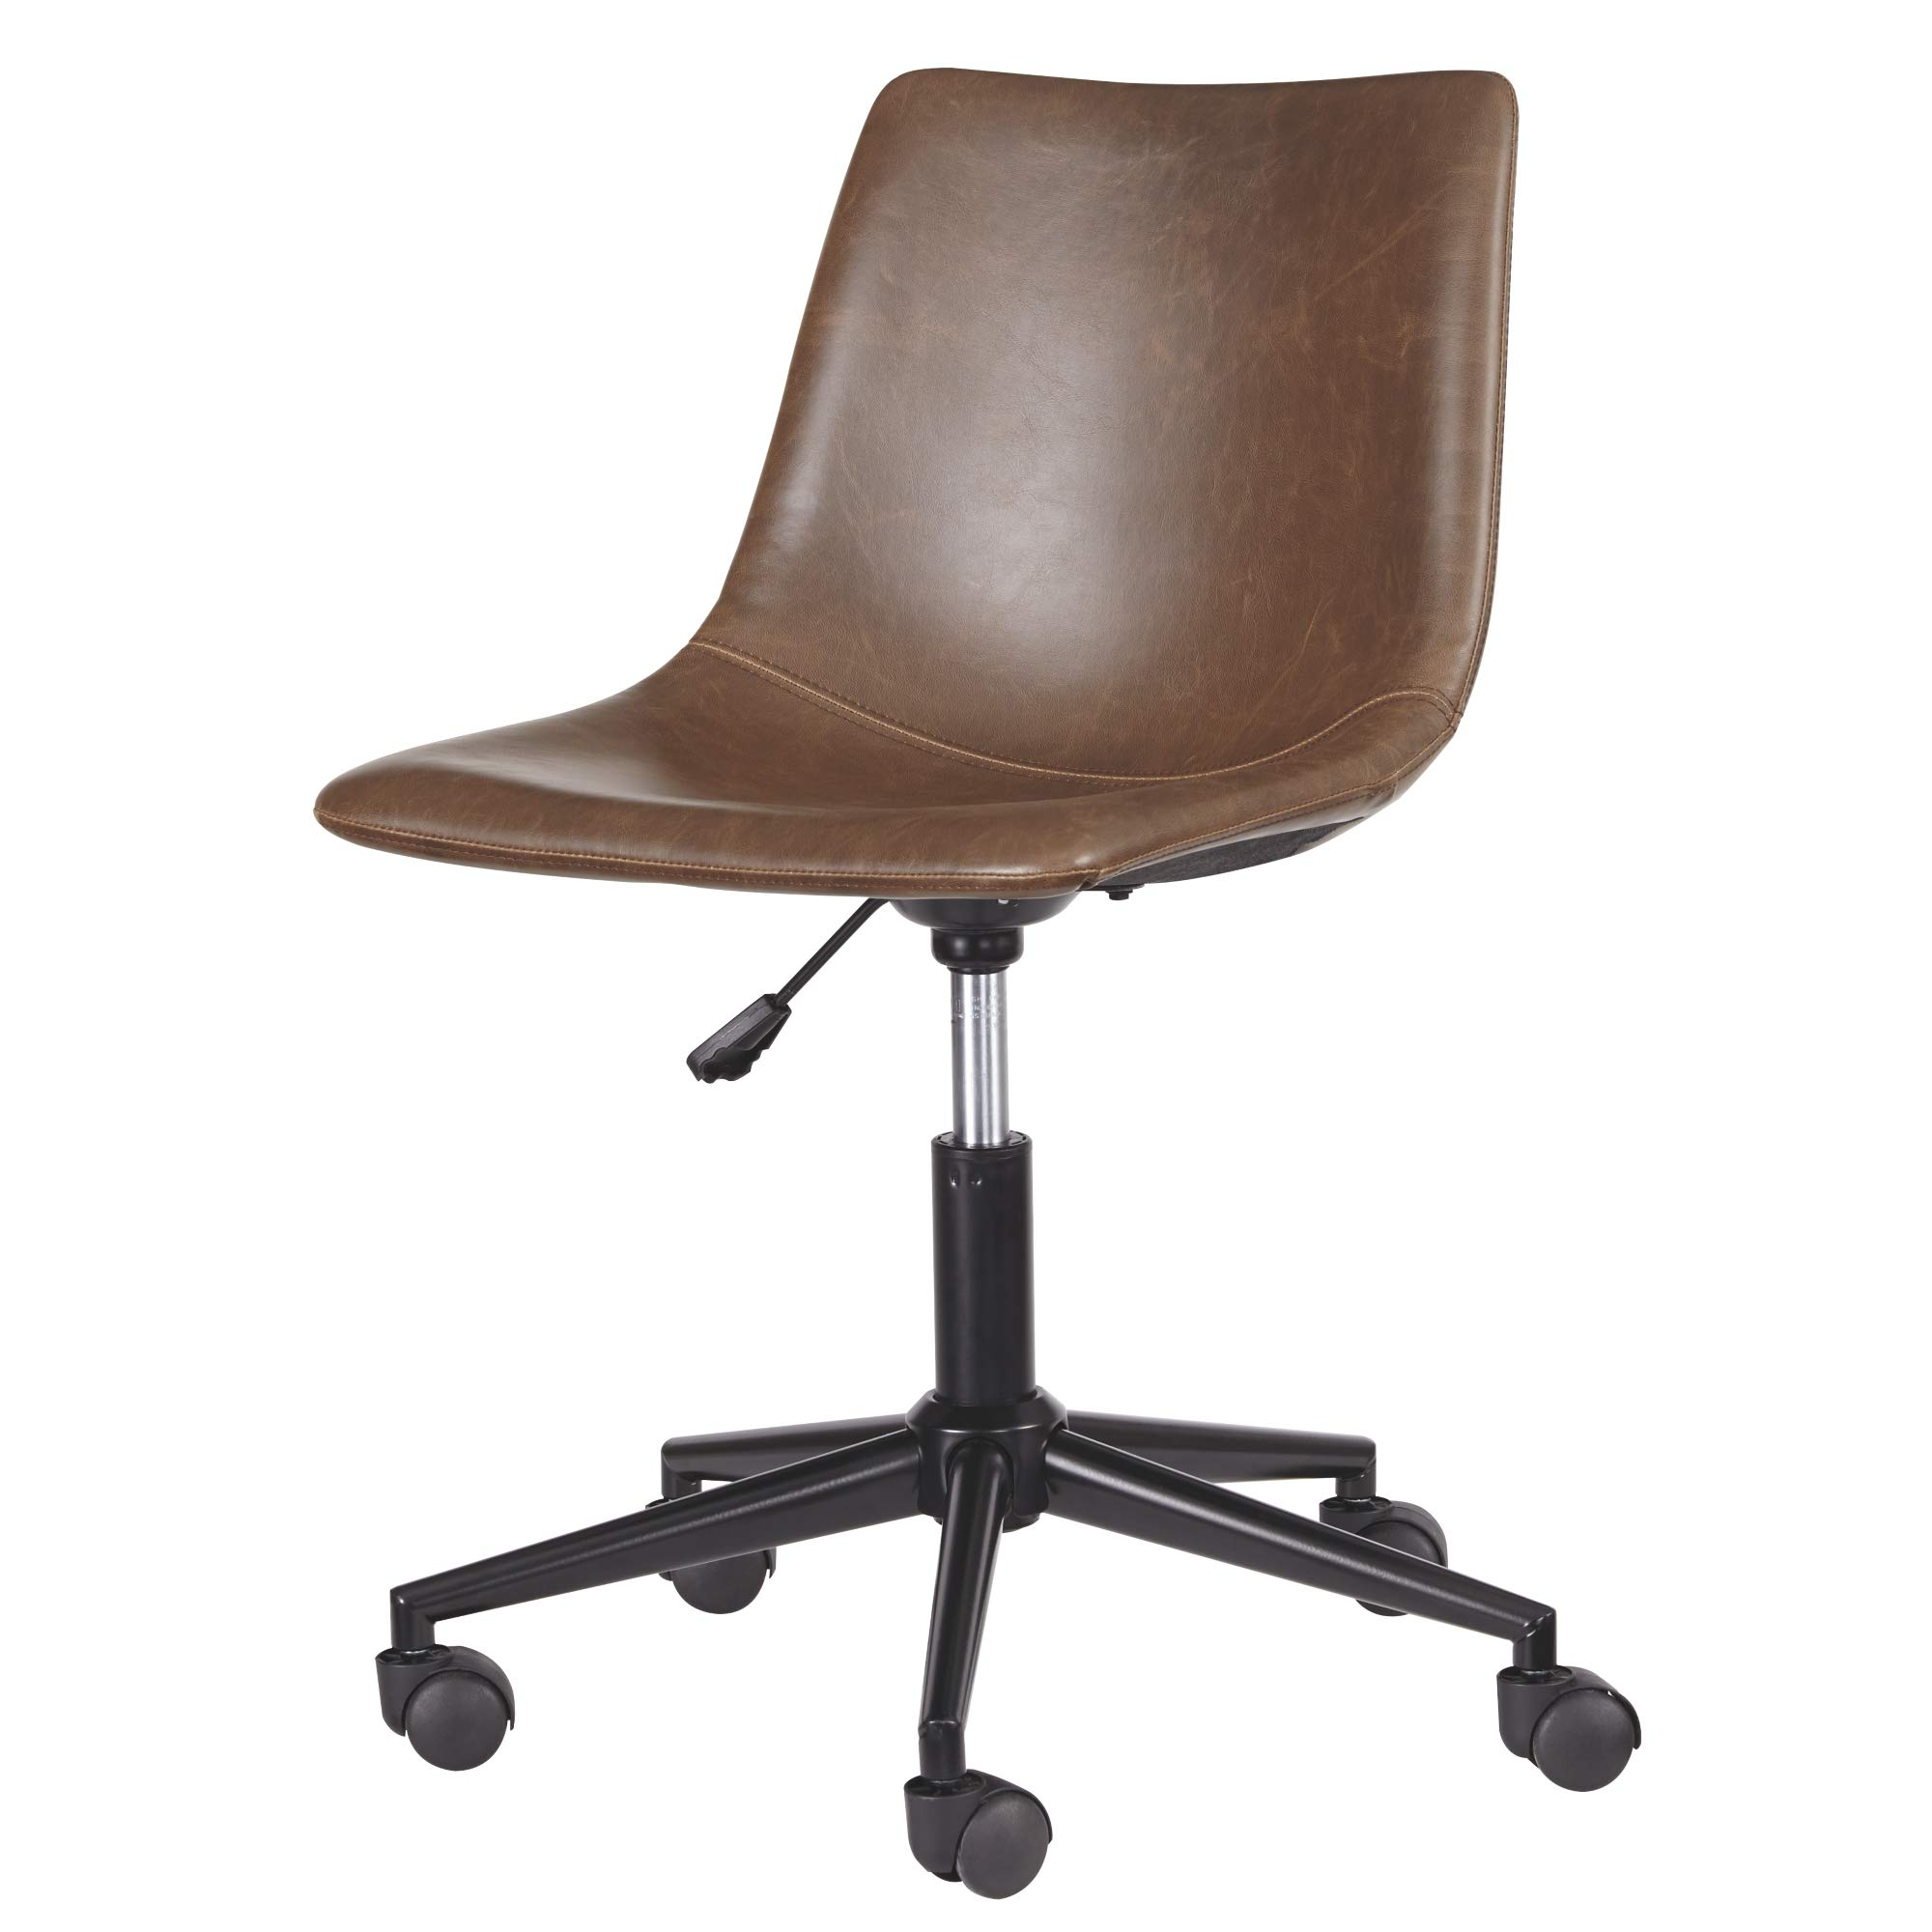 Swivel Dining Chair Office Furniture Computer Desk – Chair ...